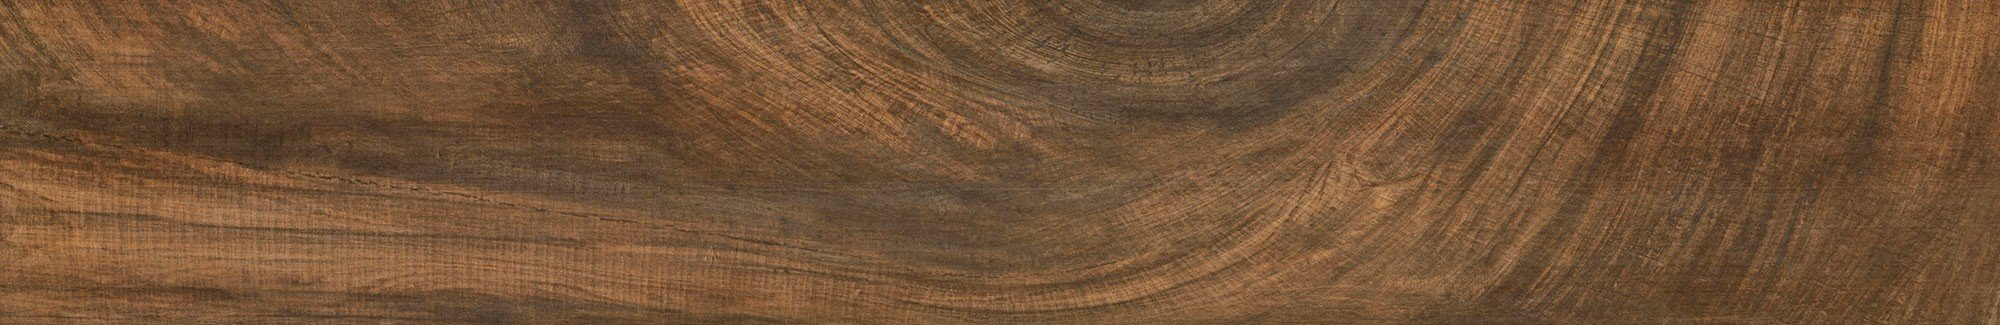 RAK Tiles -  Natural Circle Wood Brown - 195x1200mm